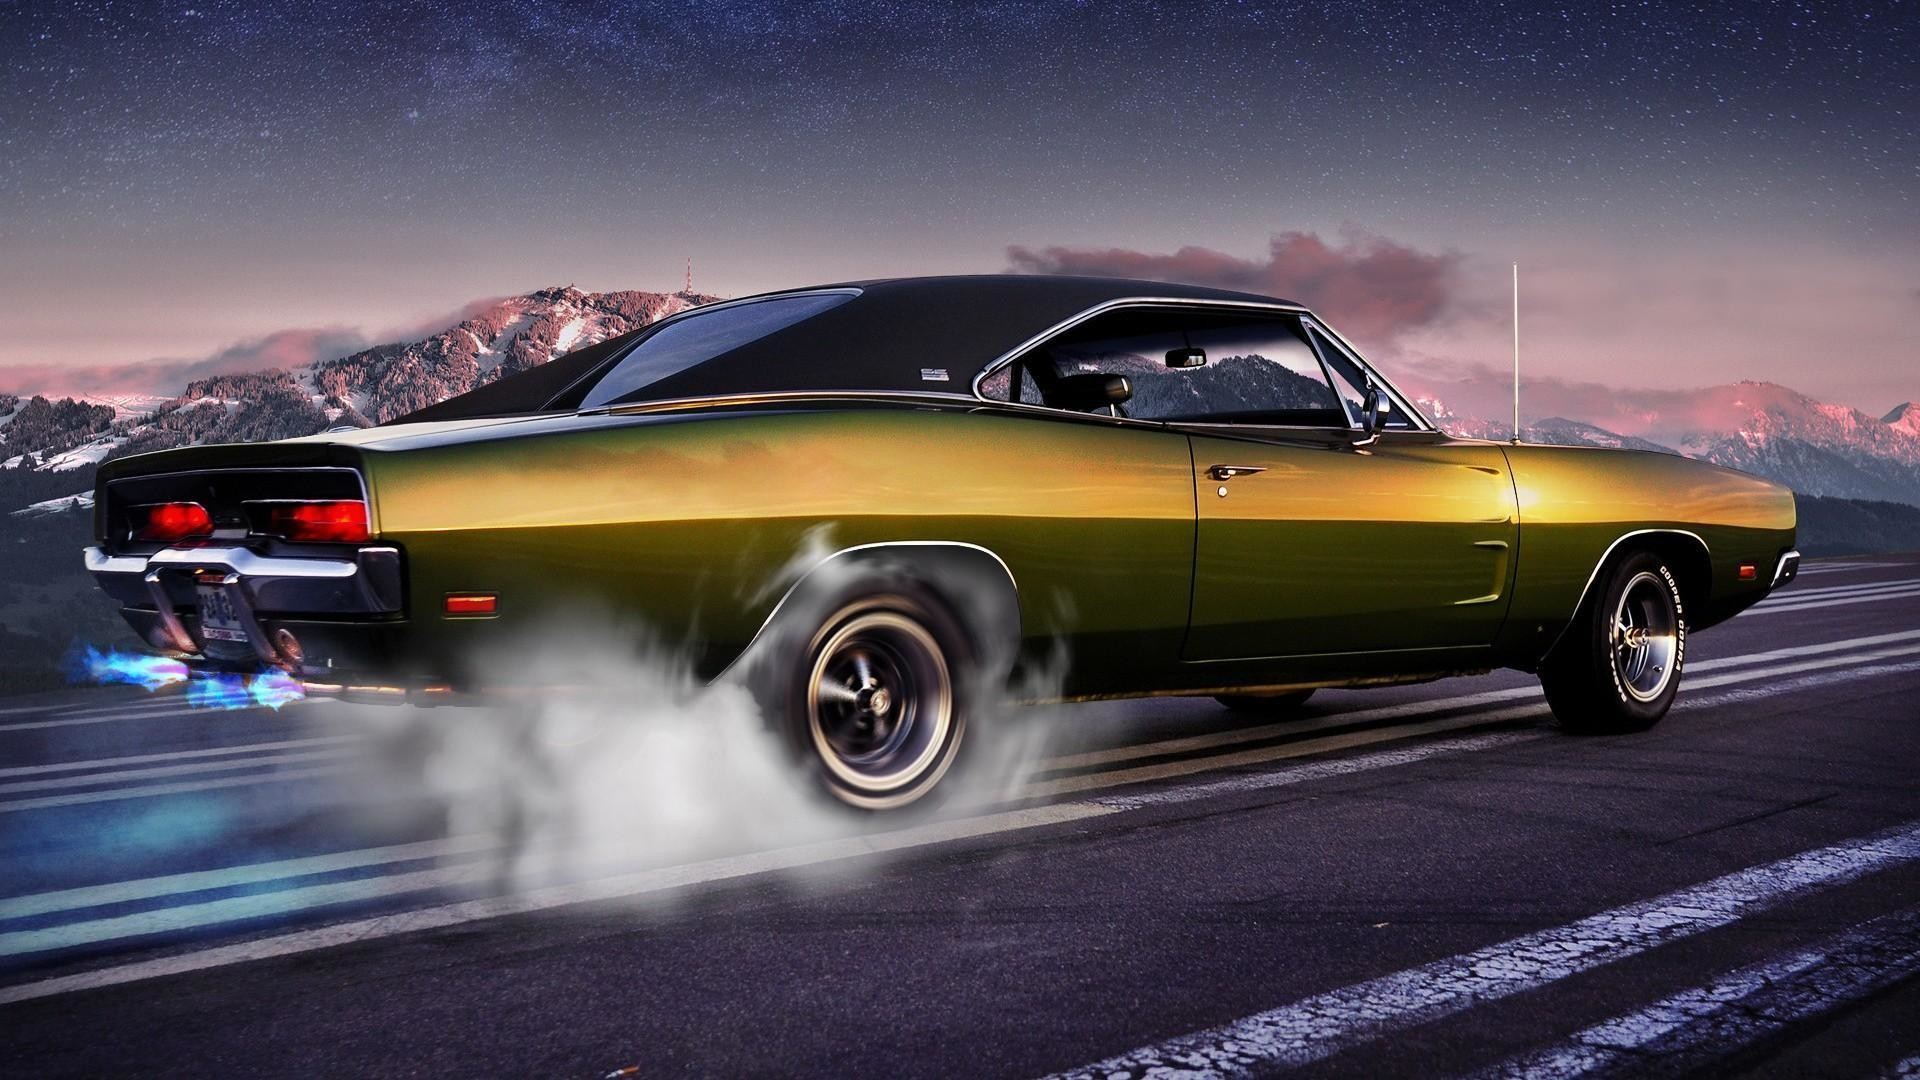 Classic Muscle Cars Wallpaper (70+ images)